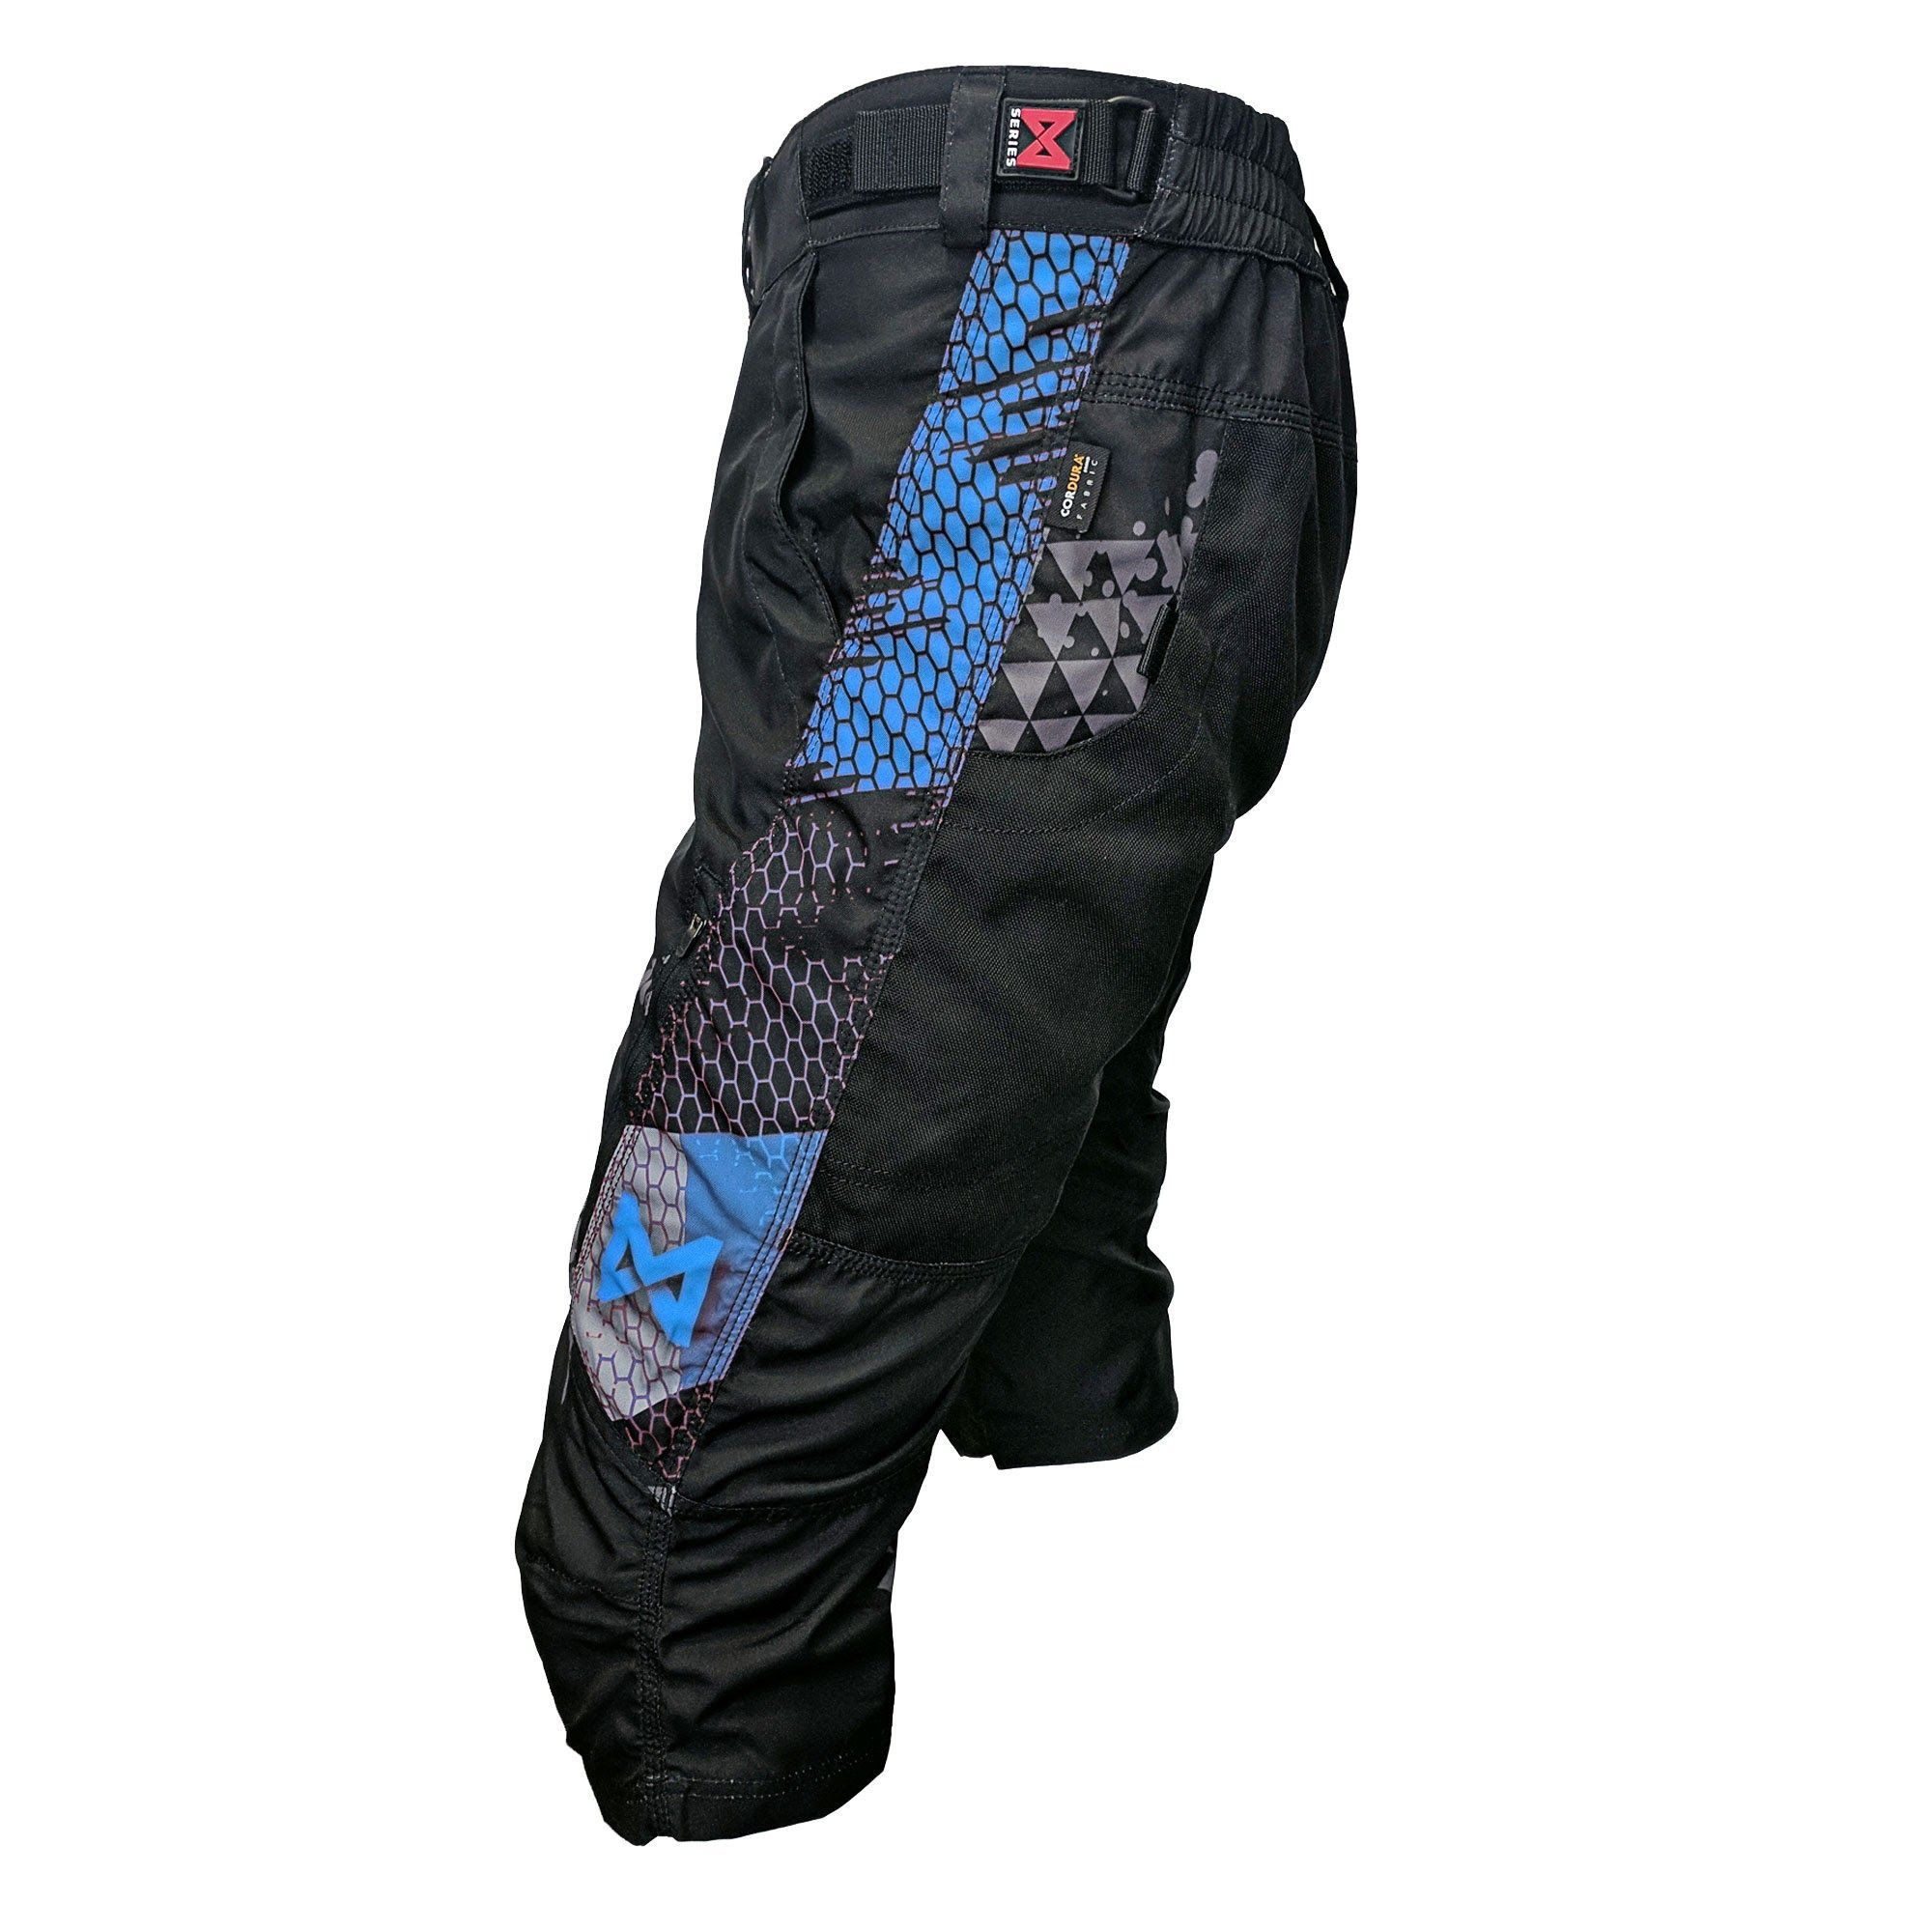 Mx Series Short Blue Skydiving Gear Fabric Combinations Form Fitting